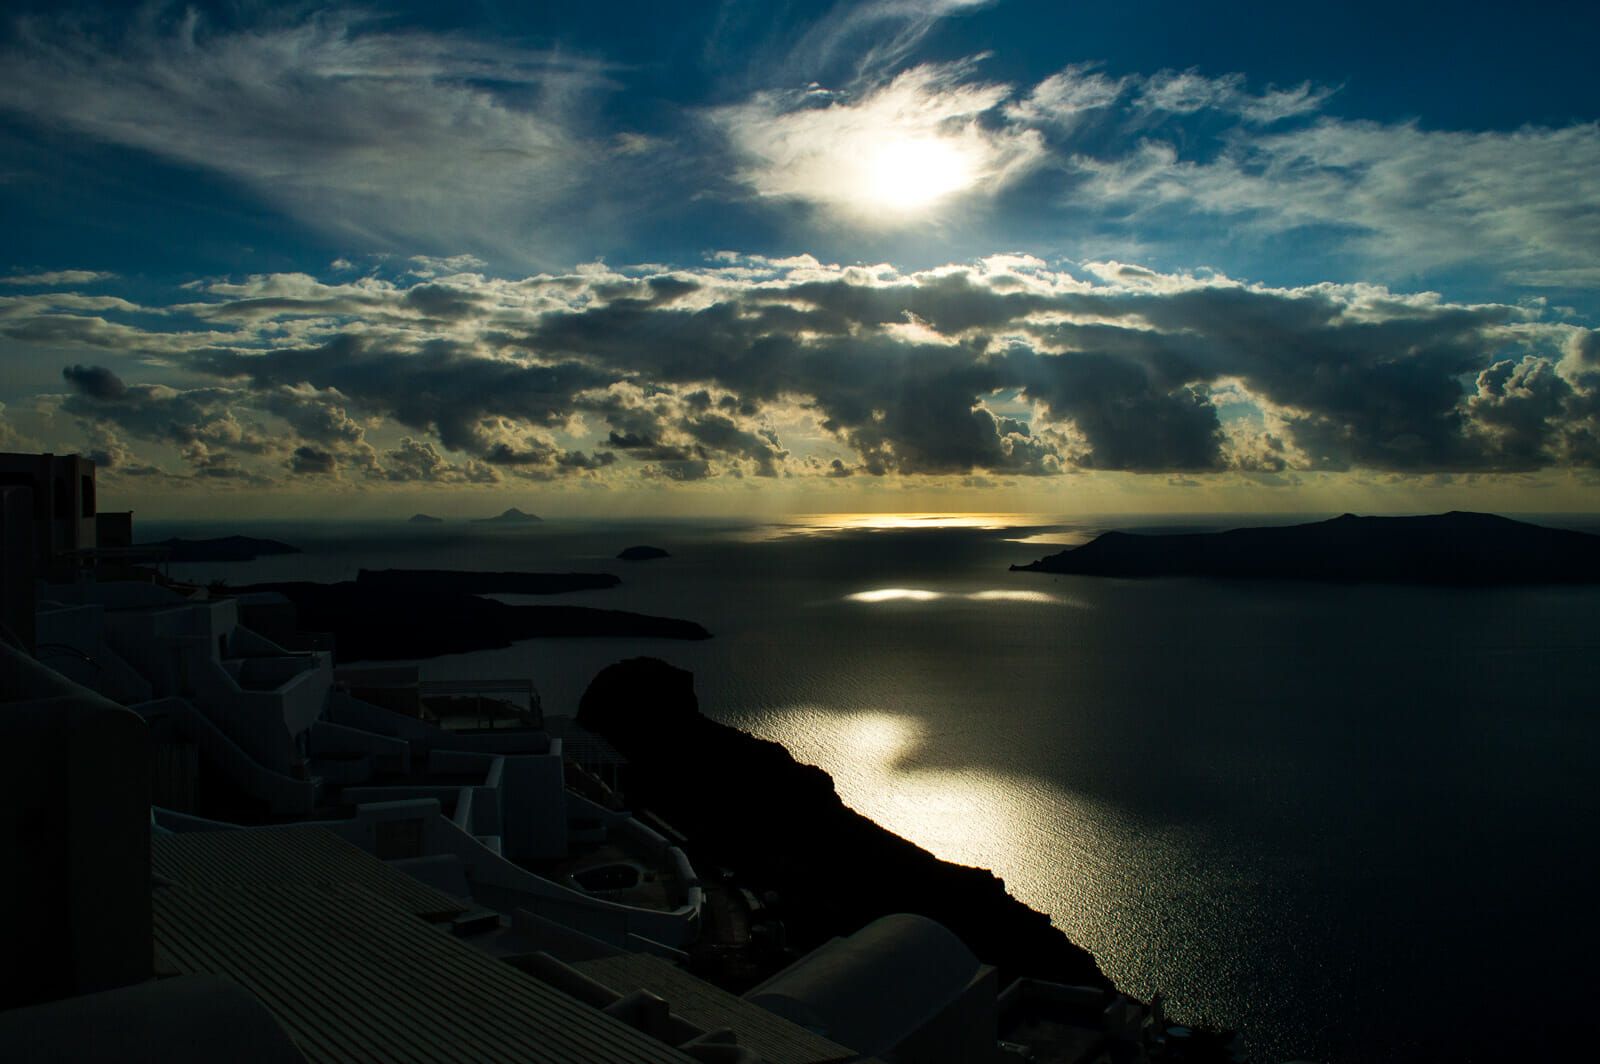 First of many sunsets at Santorini